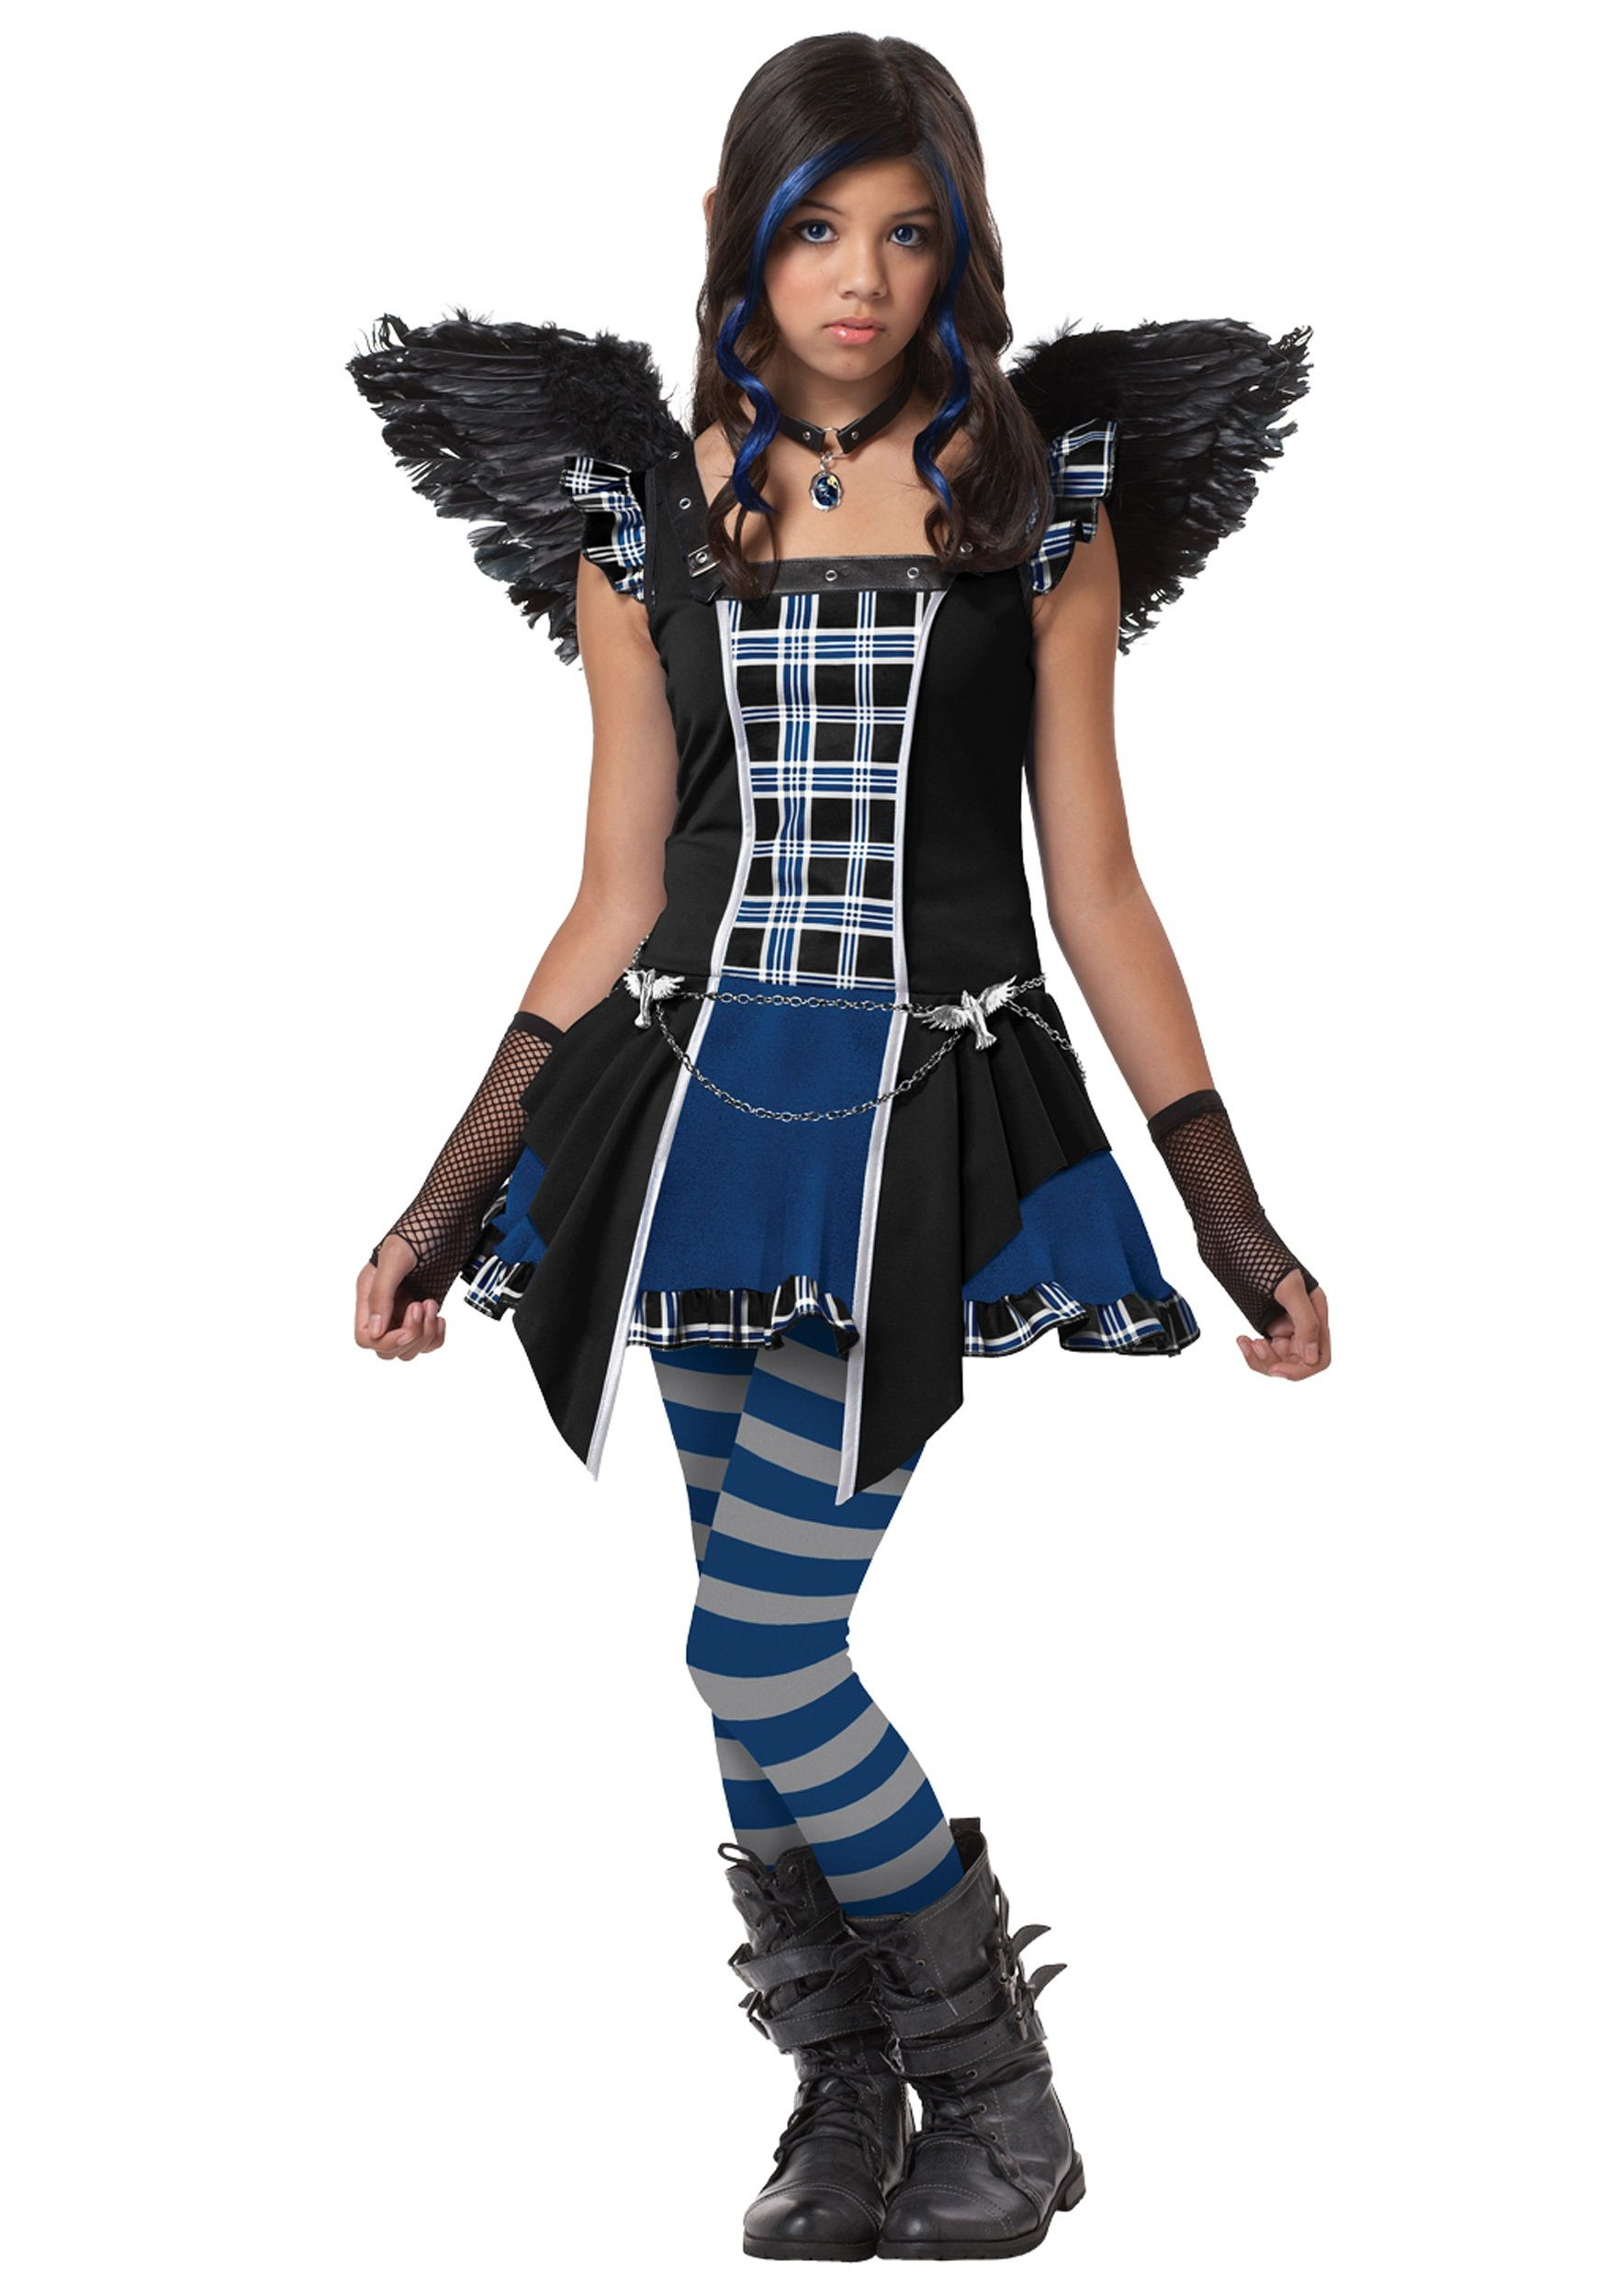 tween costumes for girls | costume ideas classic halloween costumes